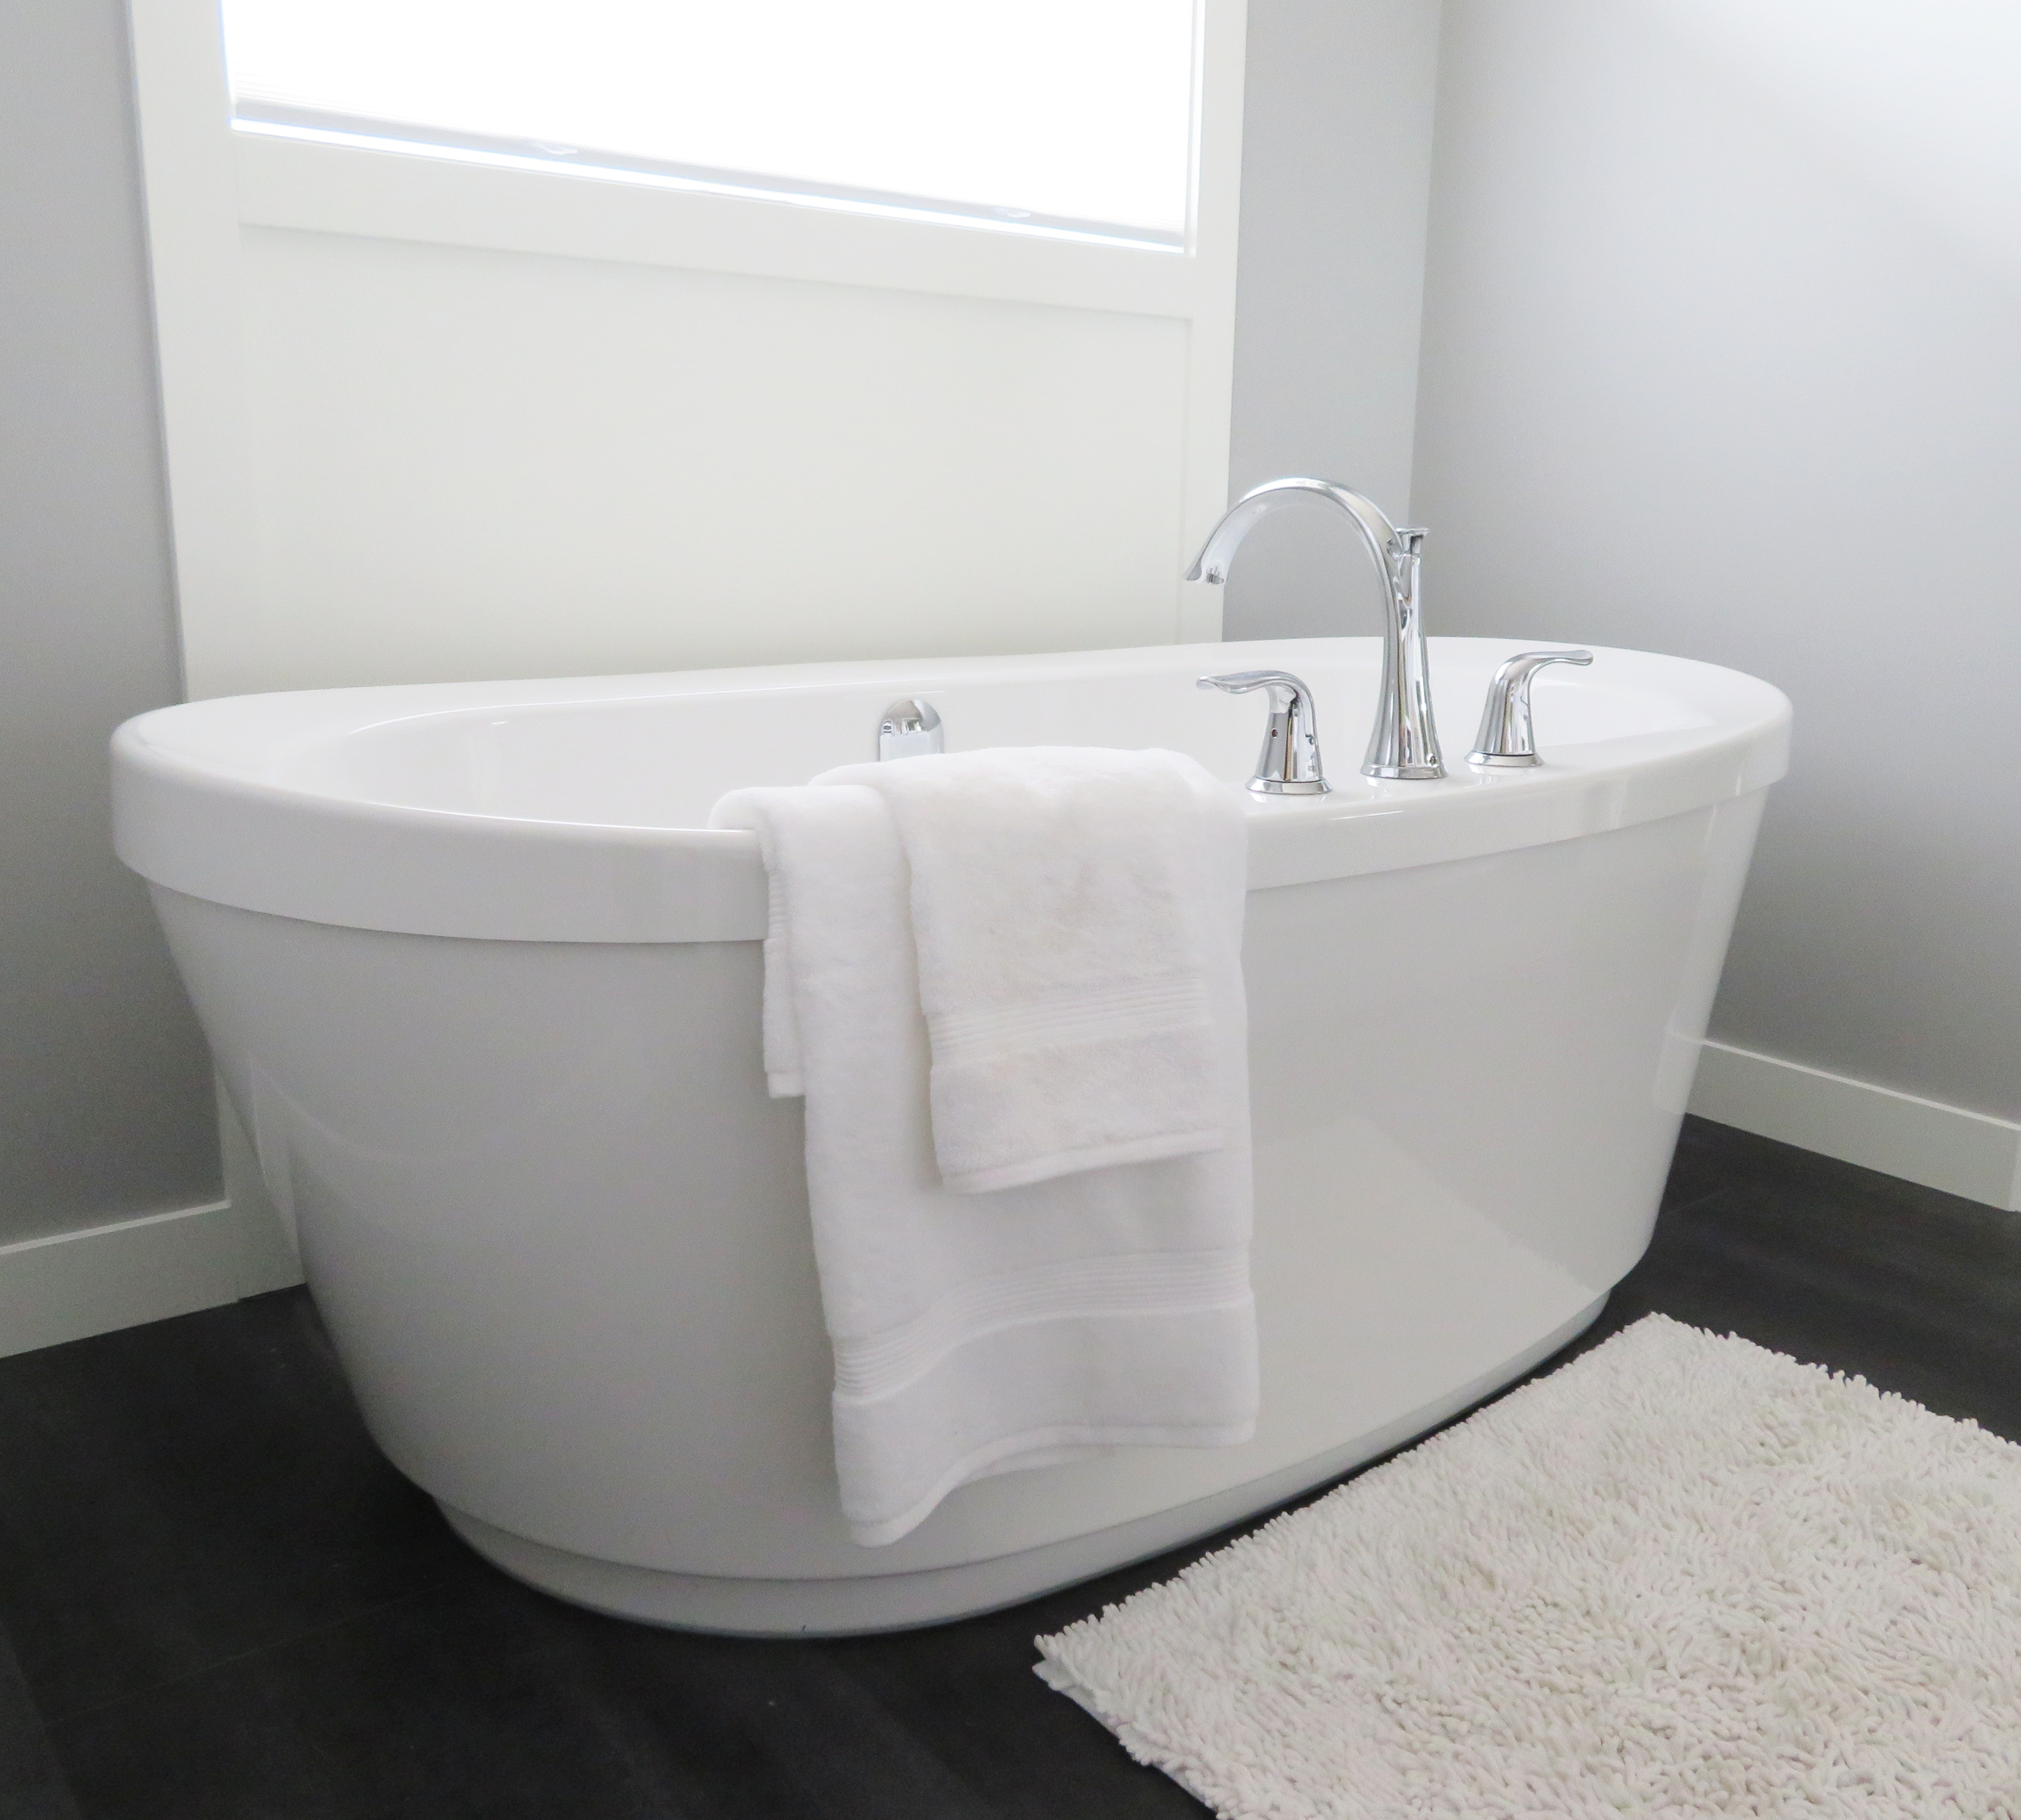 Design Your Way To An Easy Clean Bathroom